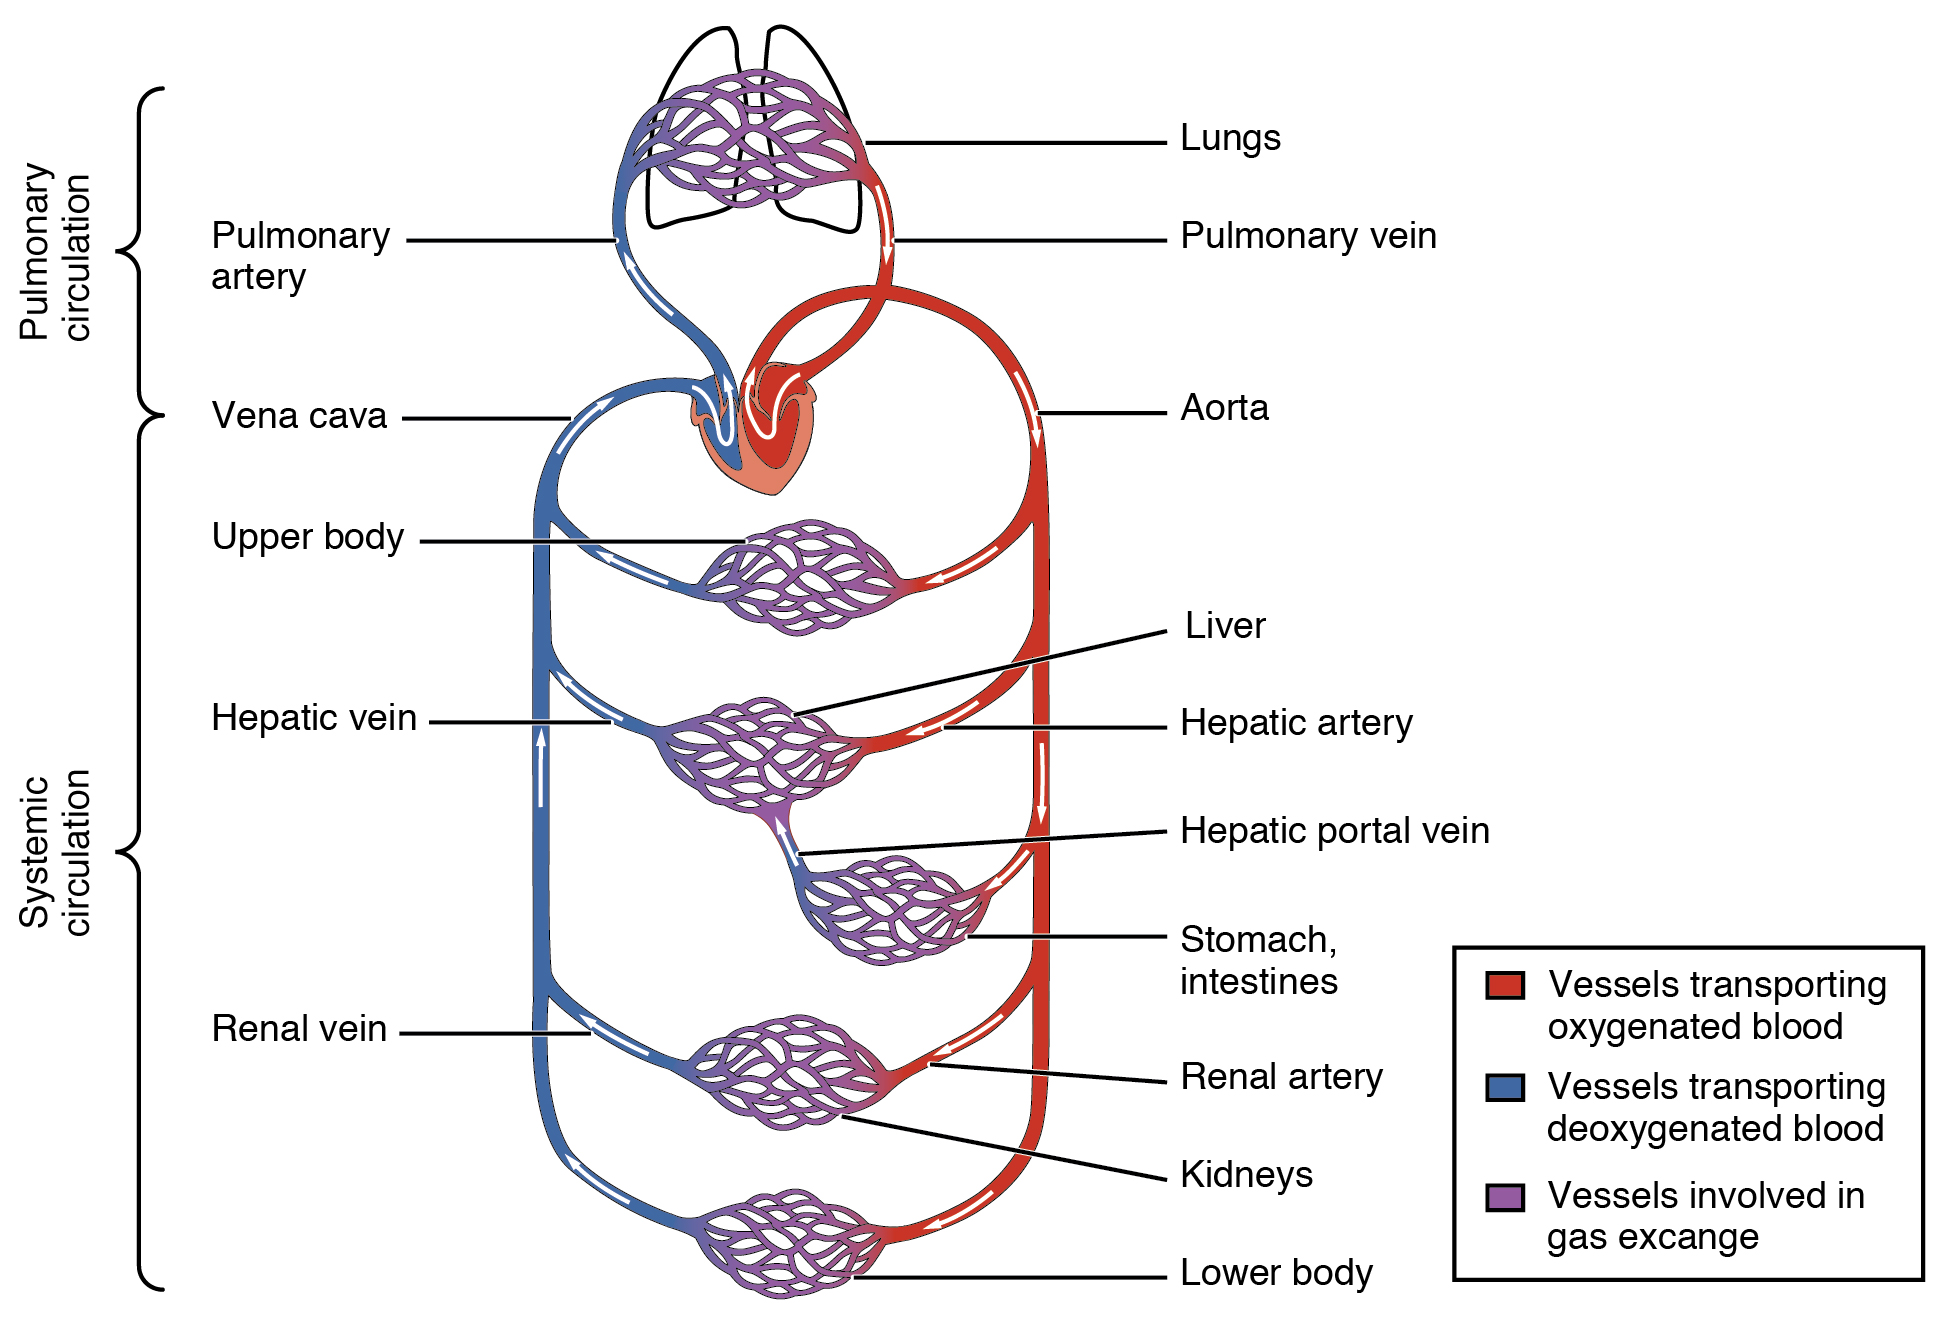 Structure and Function of Blood Vessels Anatomy and Physiology – Blood Flow Through the Heart Worksheet